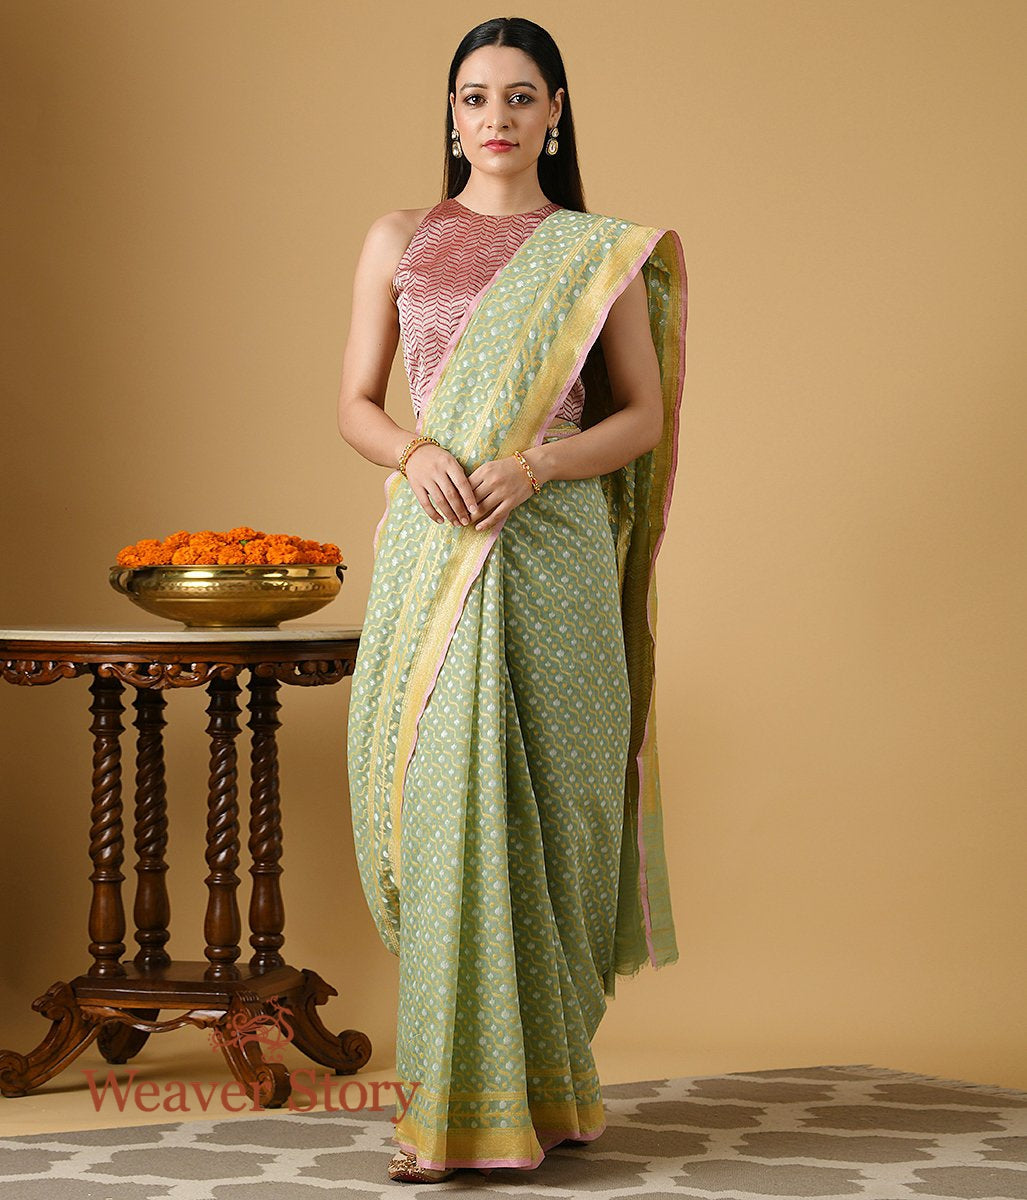 Handwoven Light Green Banarasi Cotton Saree with Gold and Silver Zari Jaal